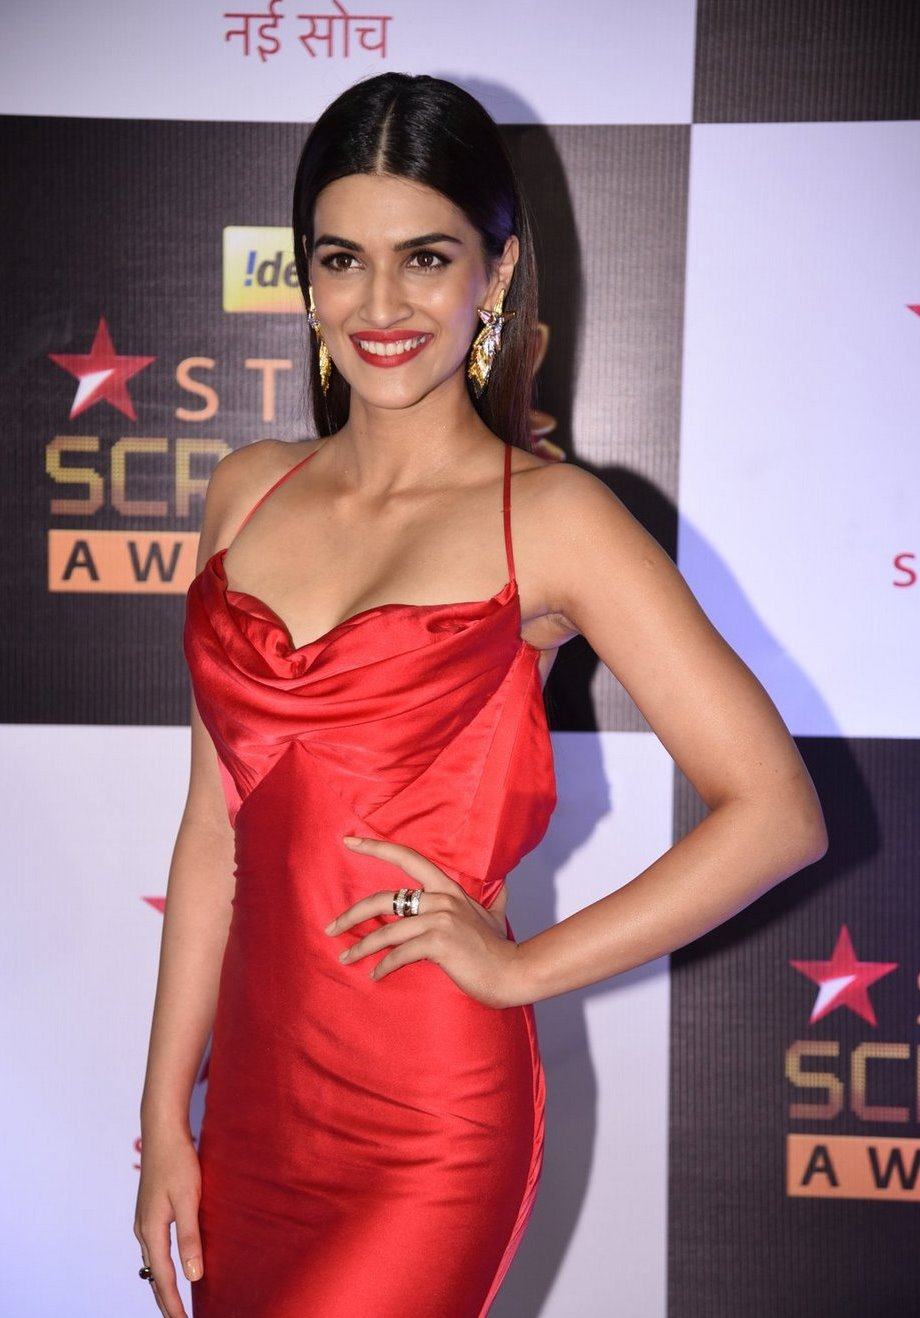 Kriti Sanon in red gown at Star Screen Awards